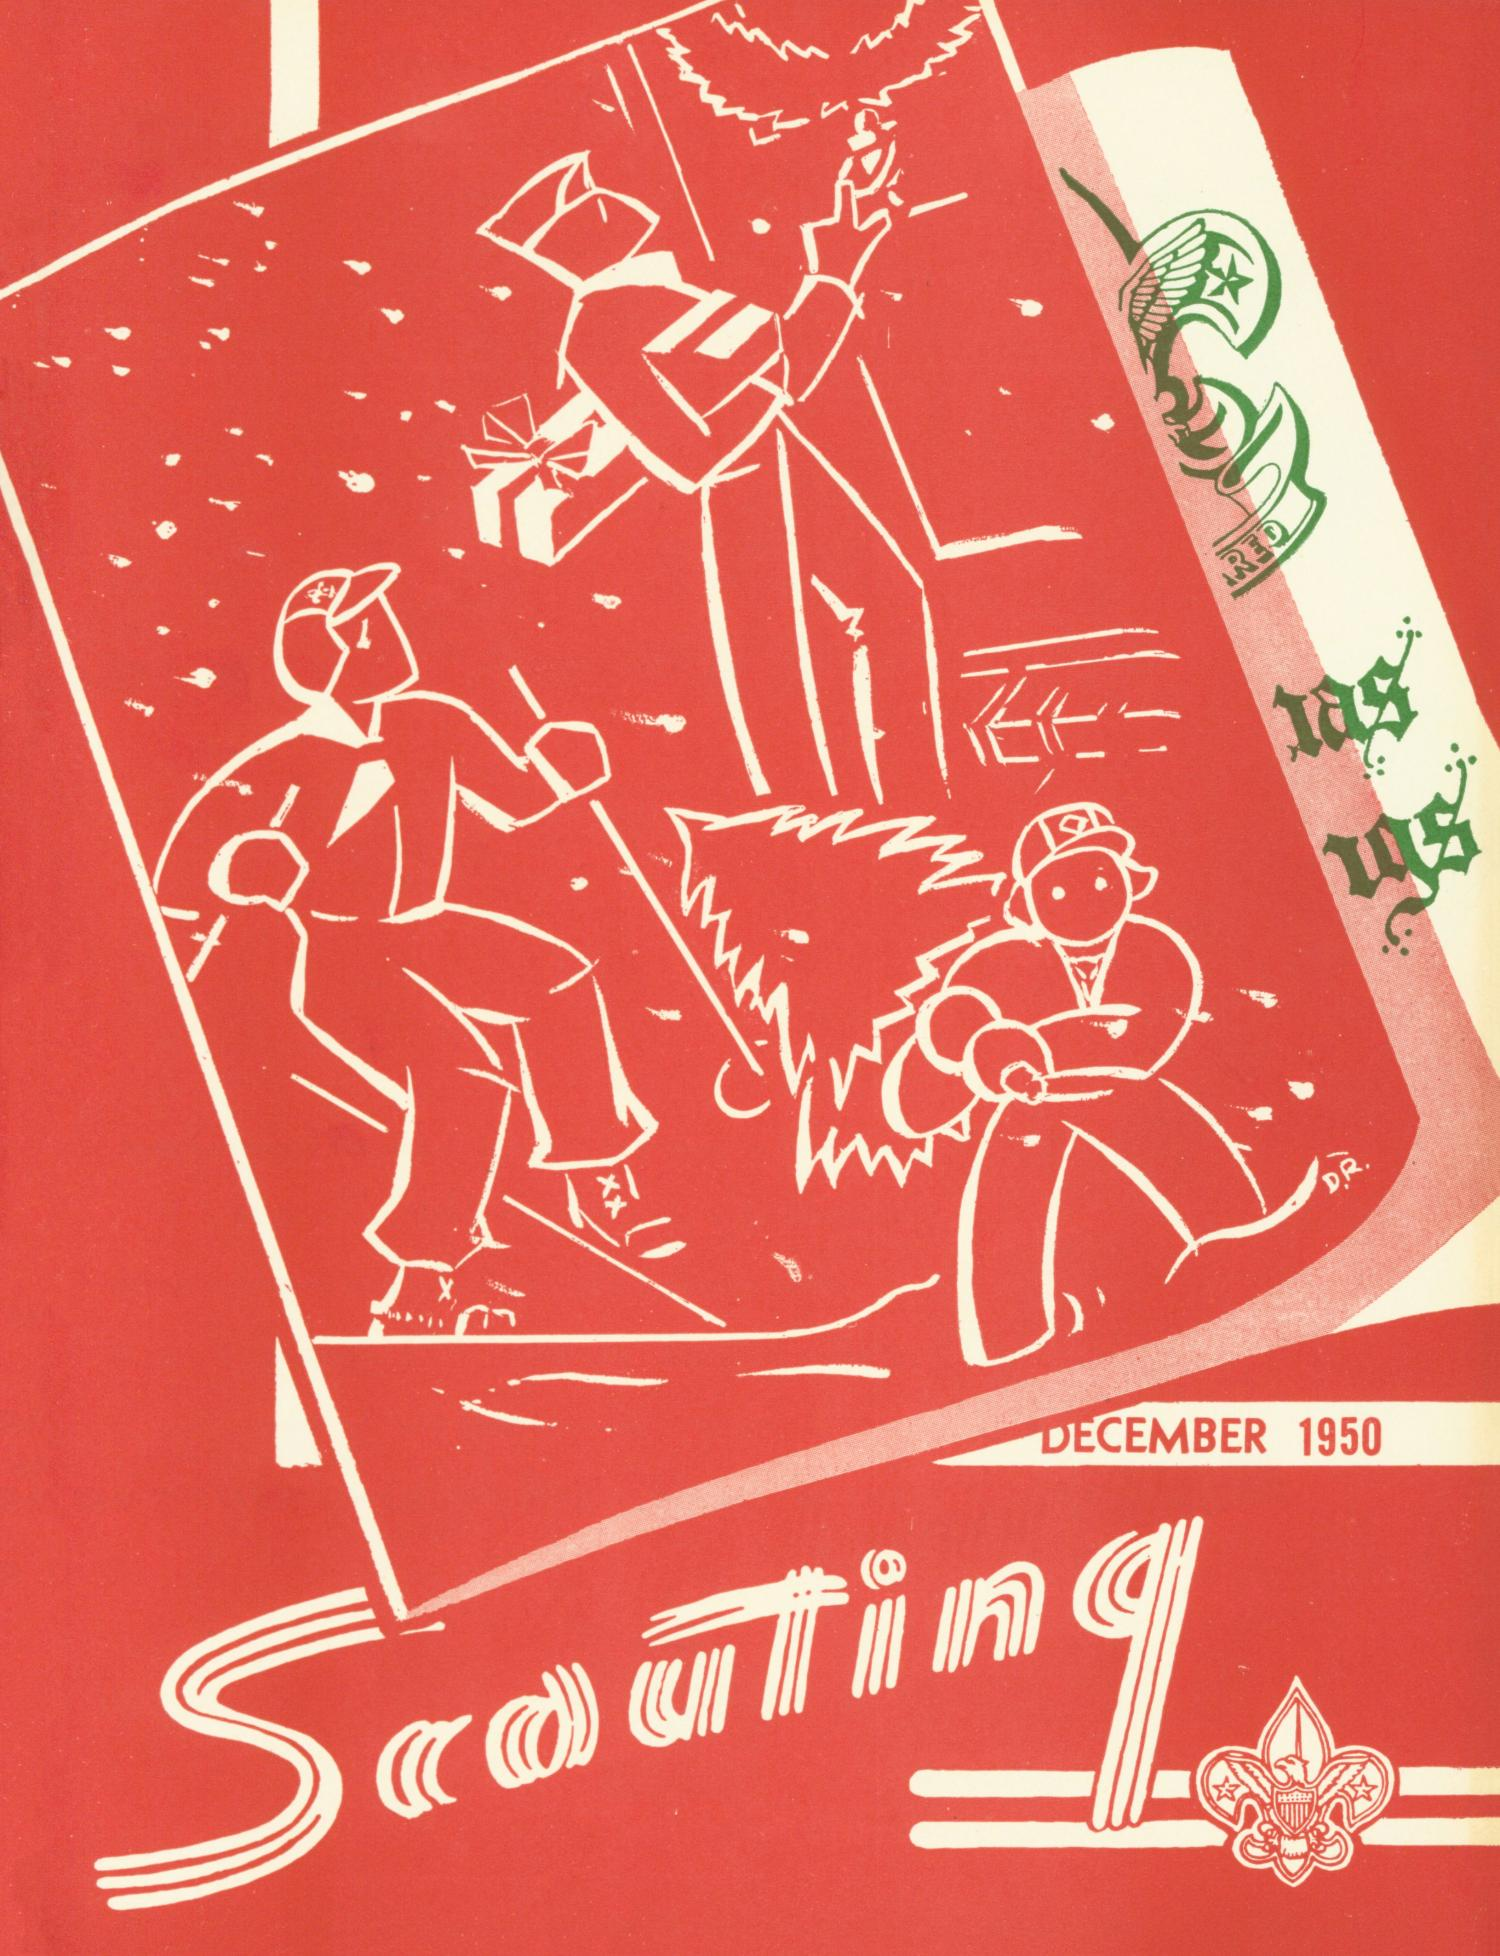 Scouting, Volume 38, Number 10, December 1950                                                                                                      Front Cover